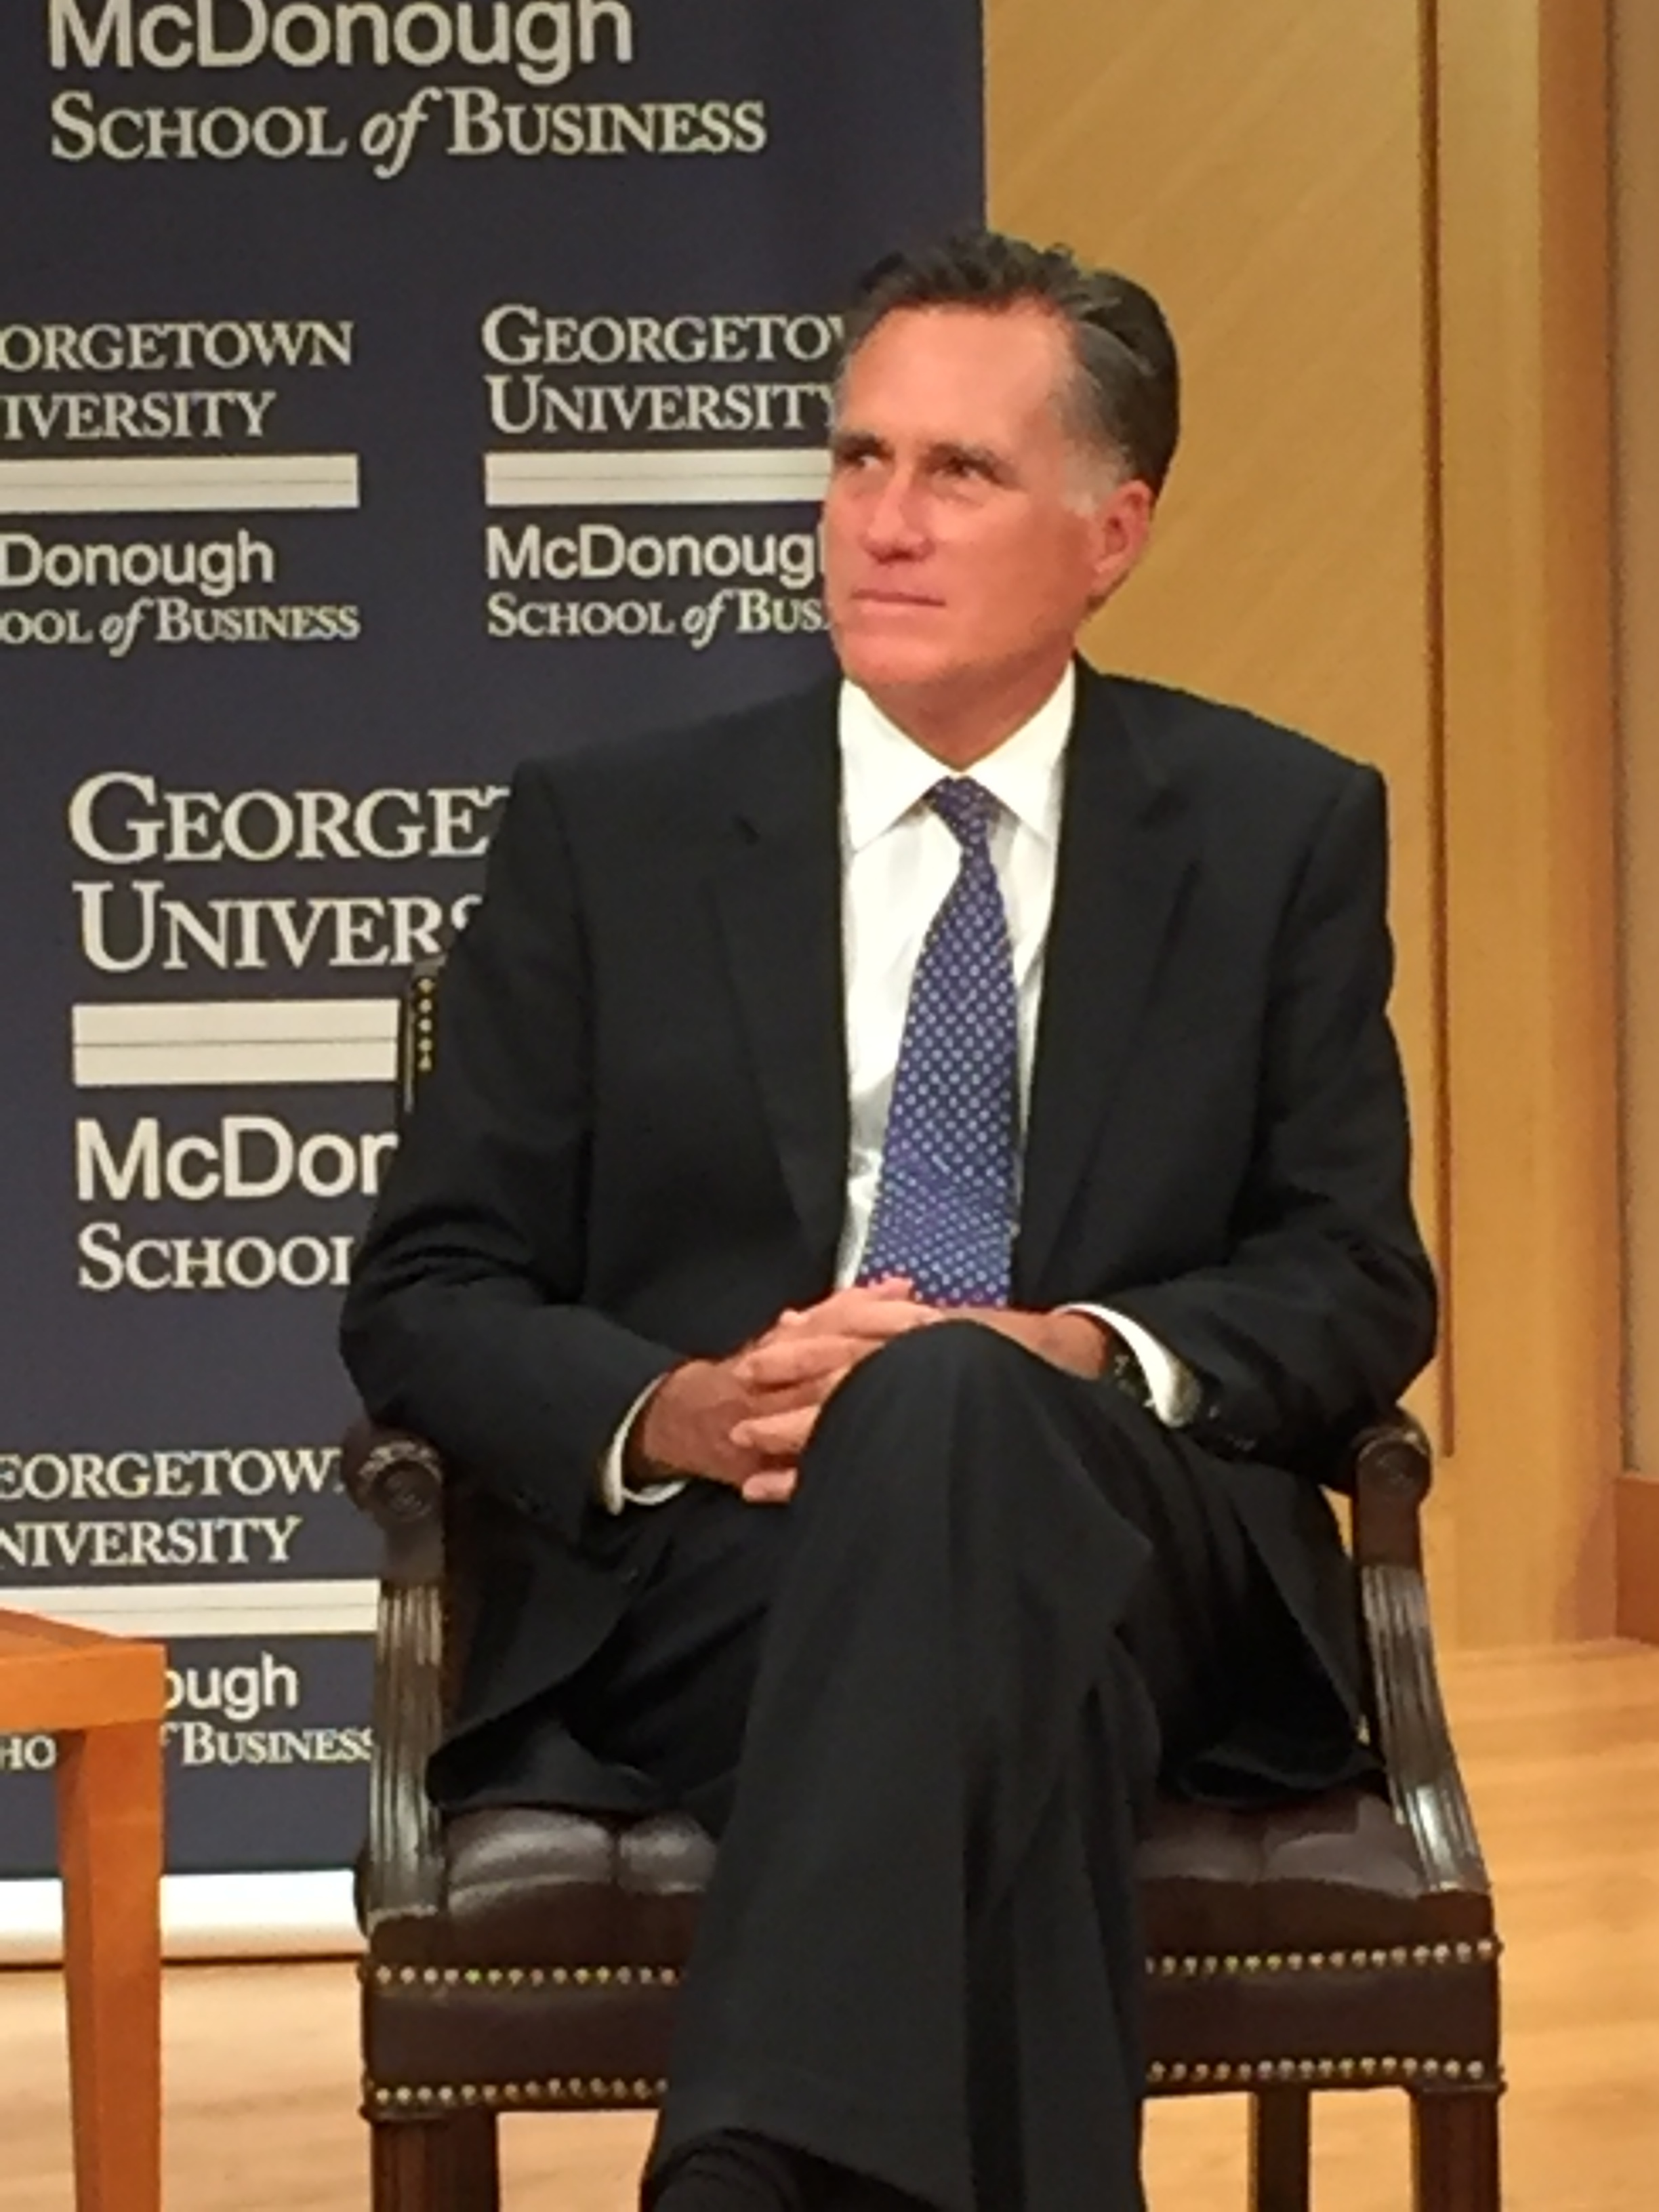 Just ask Mitt, a JD/MBA, and the man who should've been President.